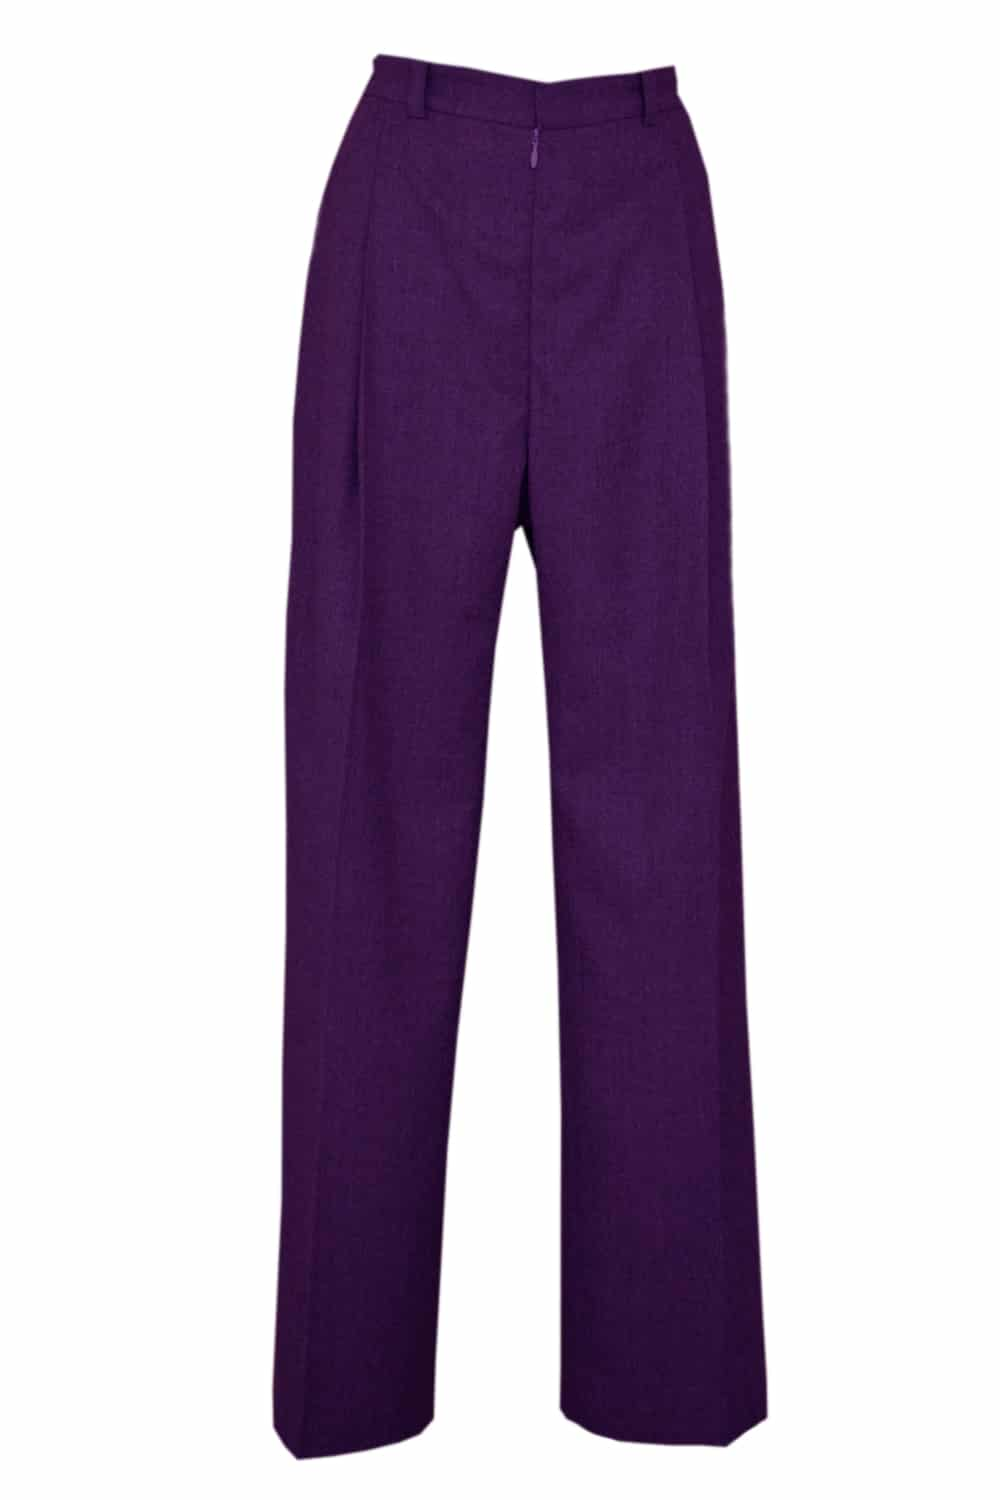 Purple trousers 100% wool. A great classic for a working girl's wardrobe, Metis tailoring pants will bring a chic touch to your look.